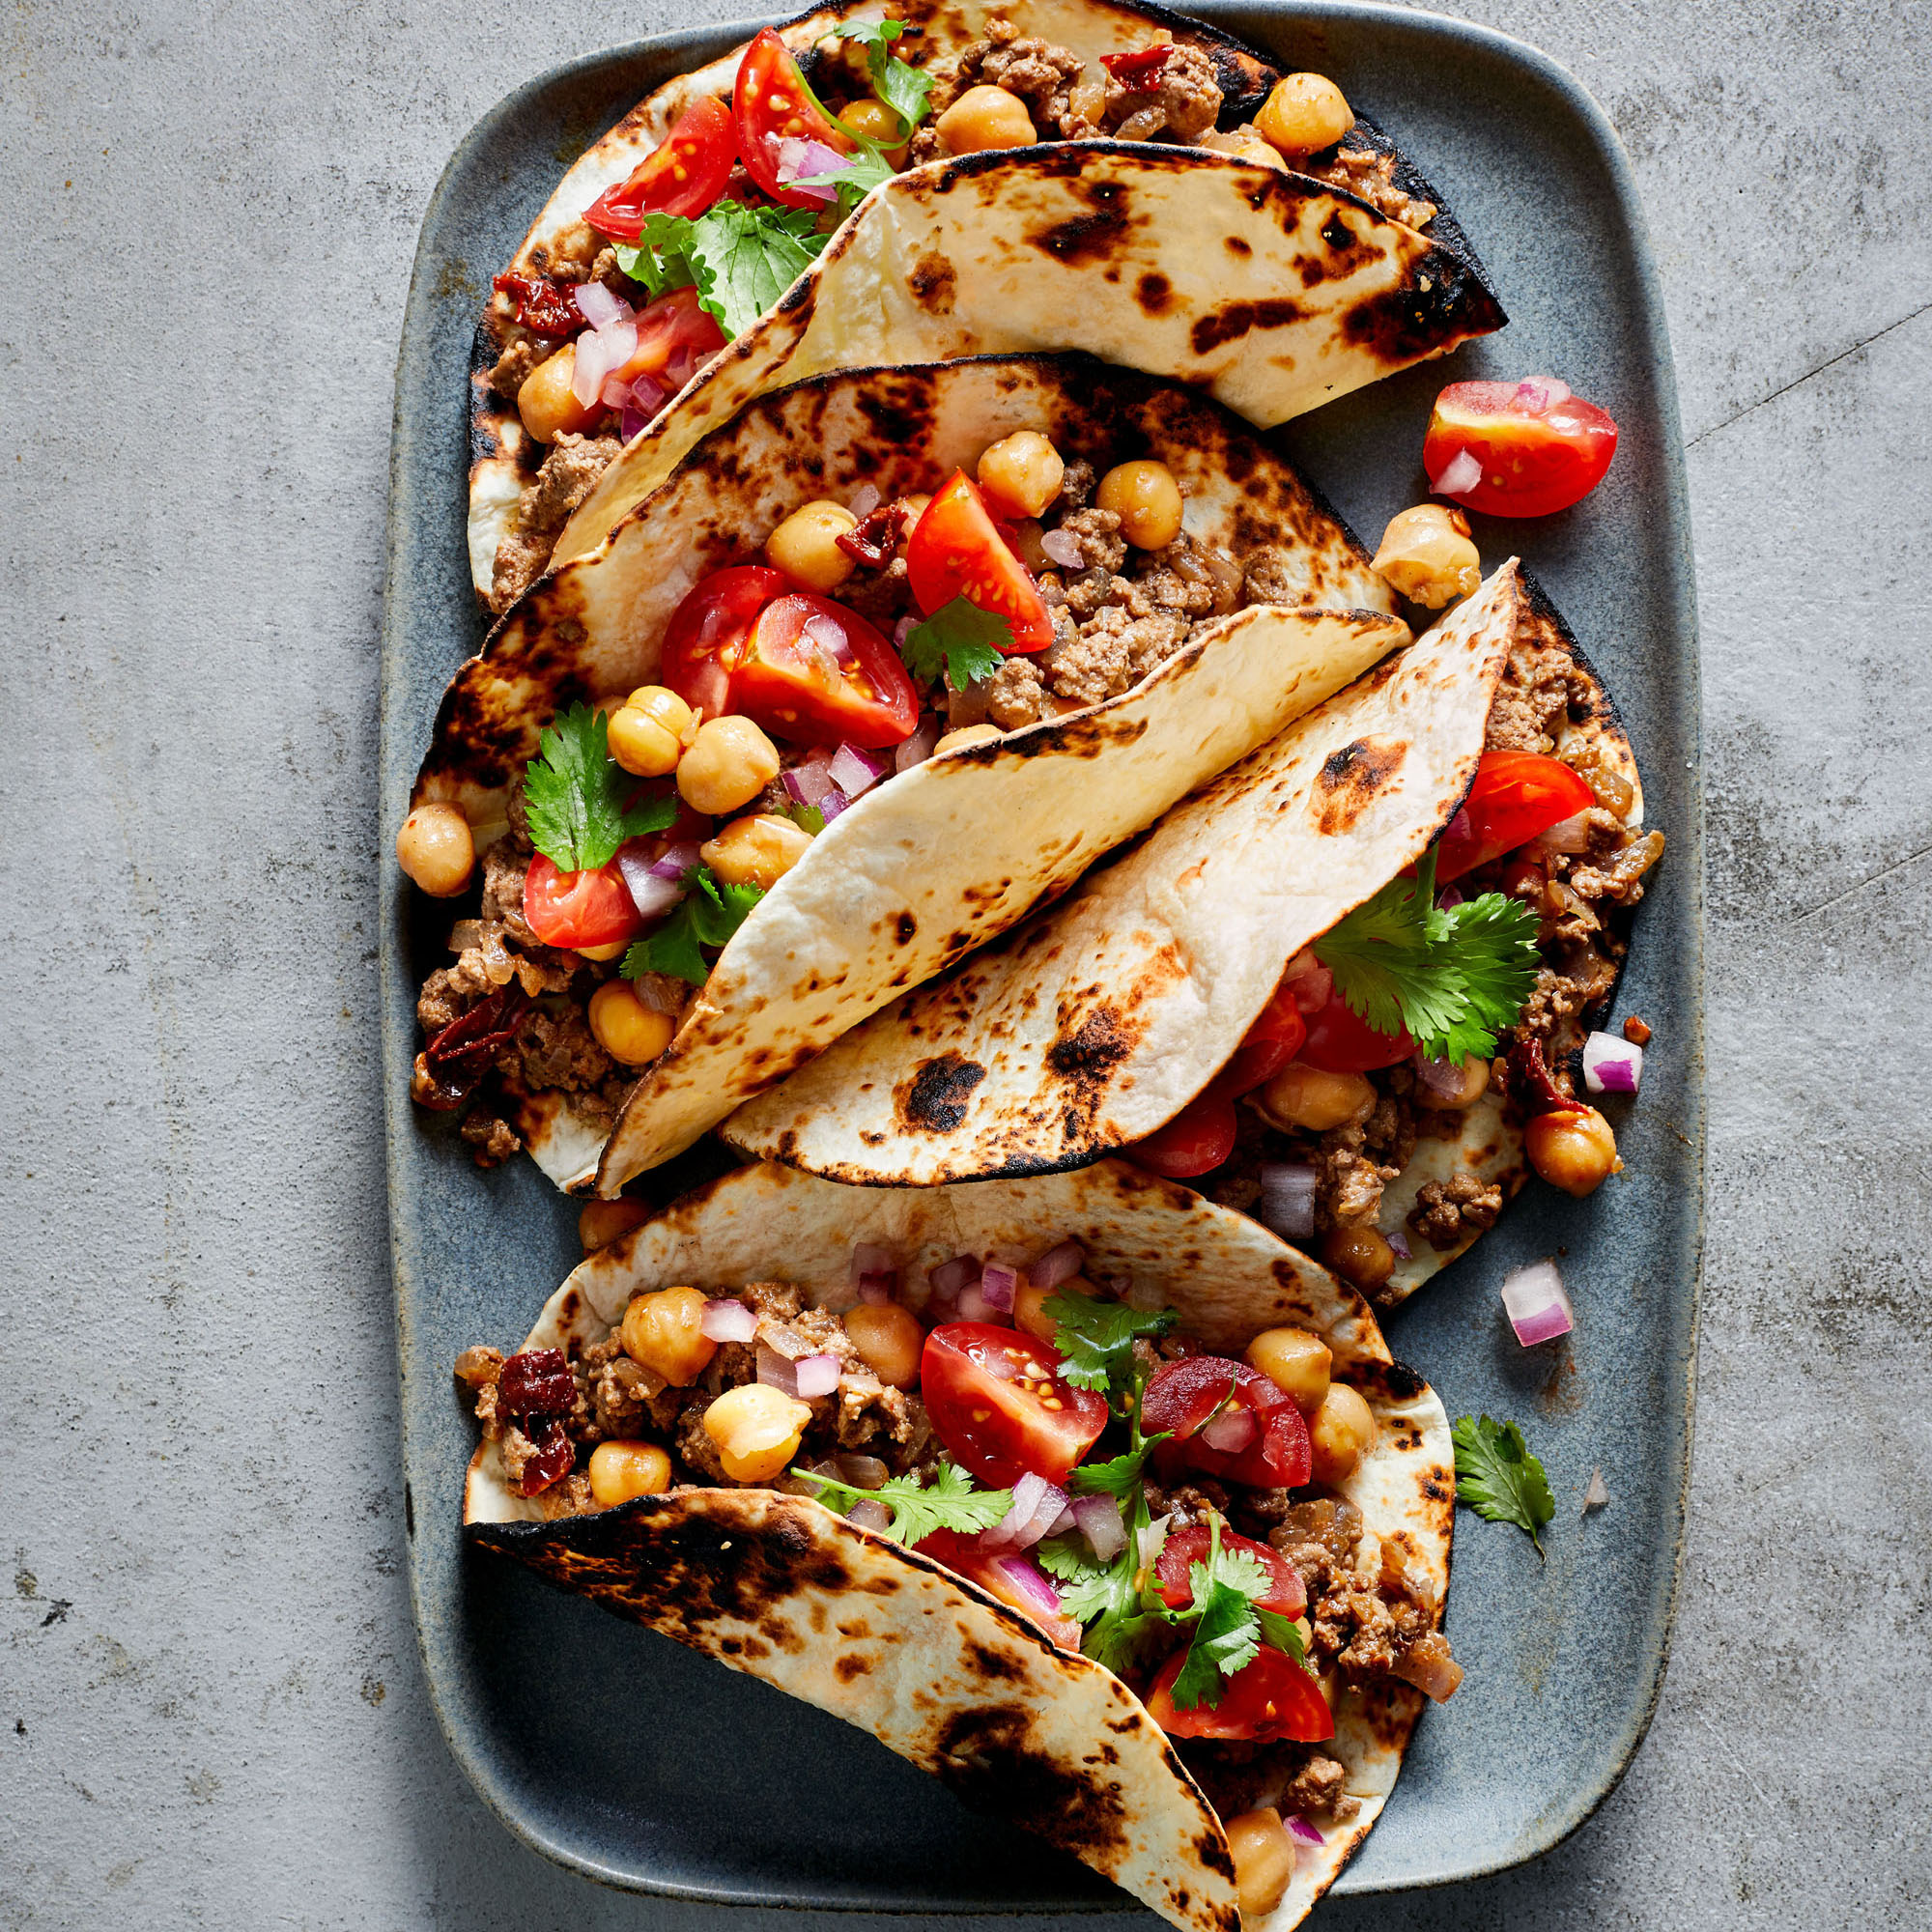 chipotle beef and chickpea tacos with pico de gallo